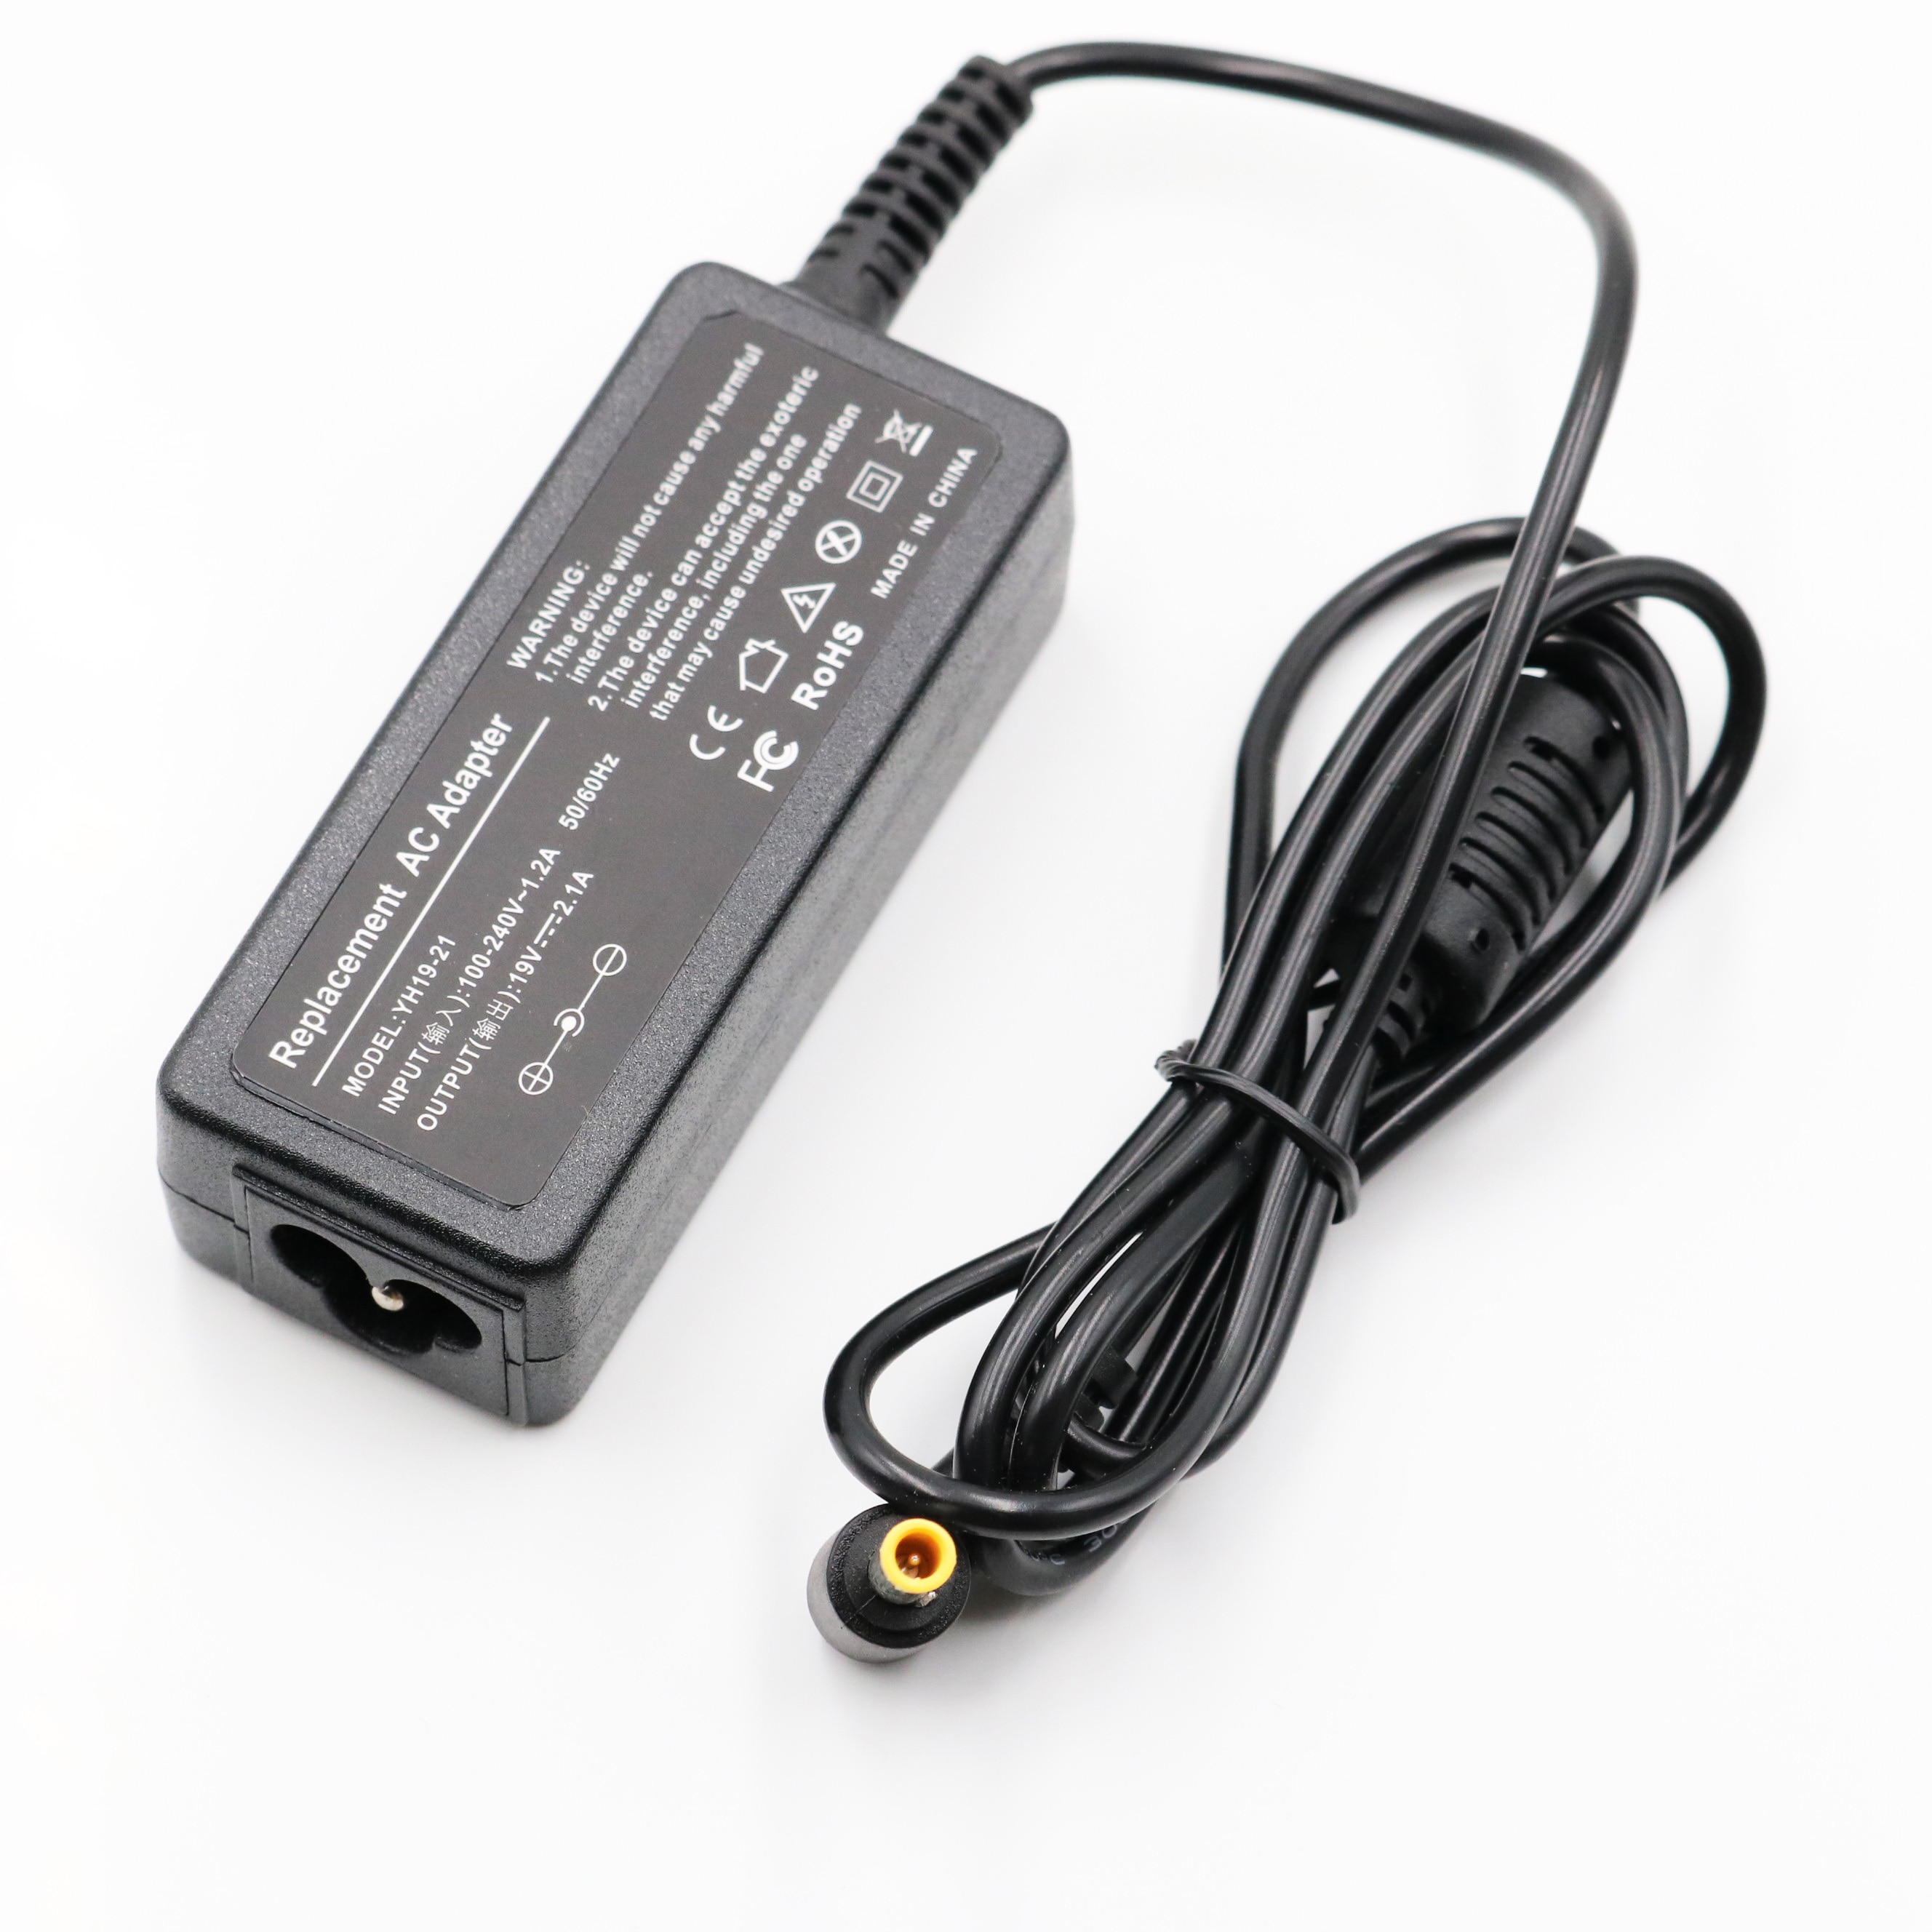 Ac Adapter Laptop Charger for Samsung Netbook 19V 2.1A 40W N130 N140 N150 N210 N220 N510 NP-N110 NP-